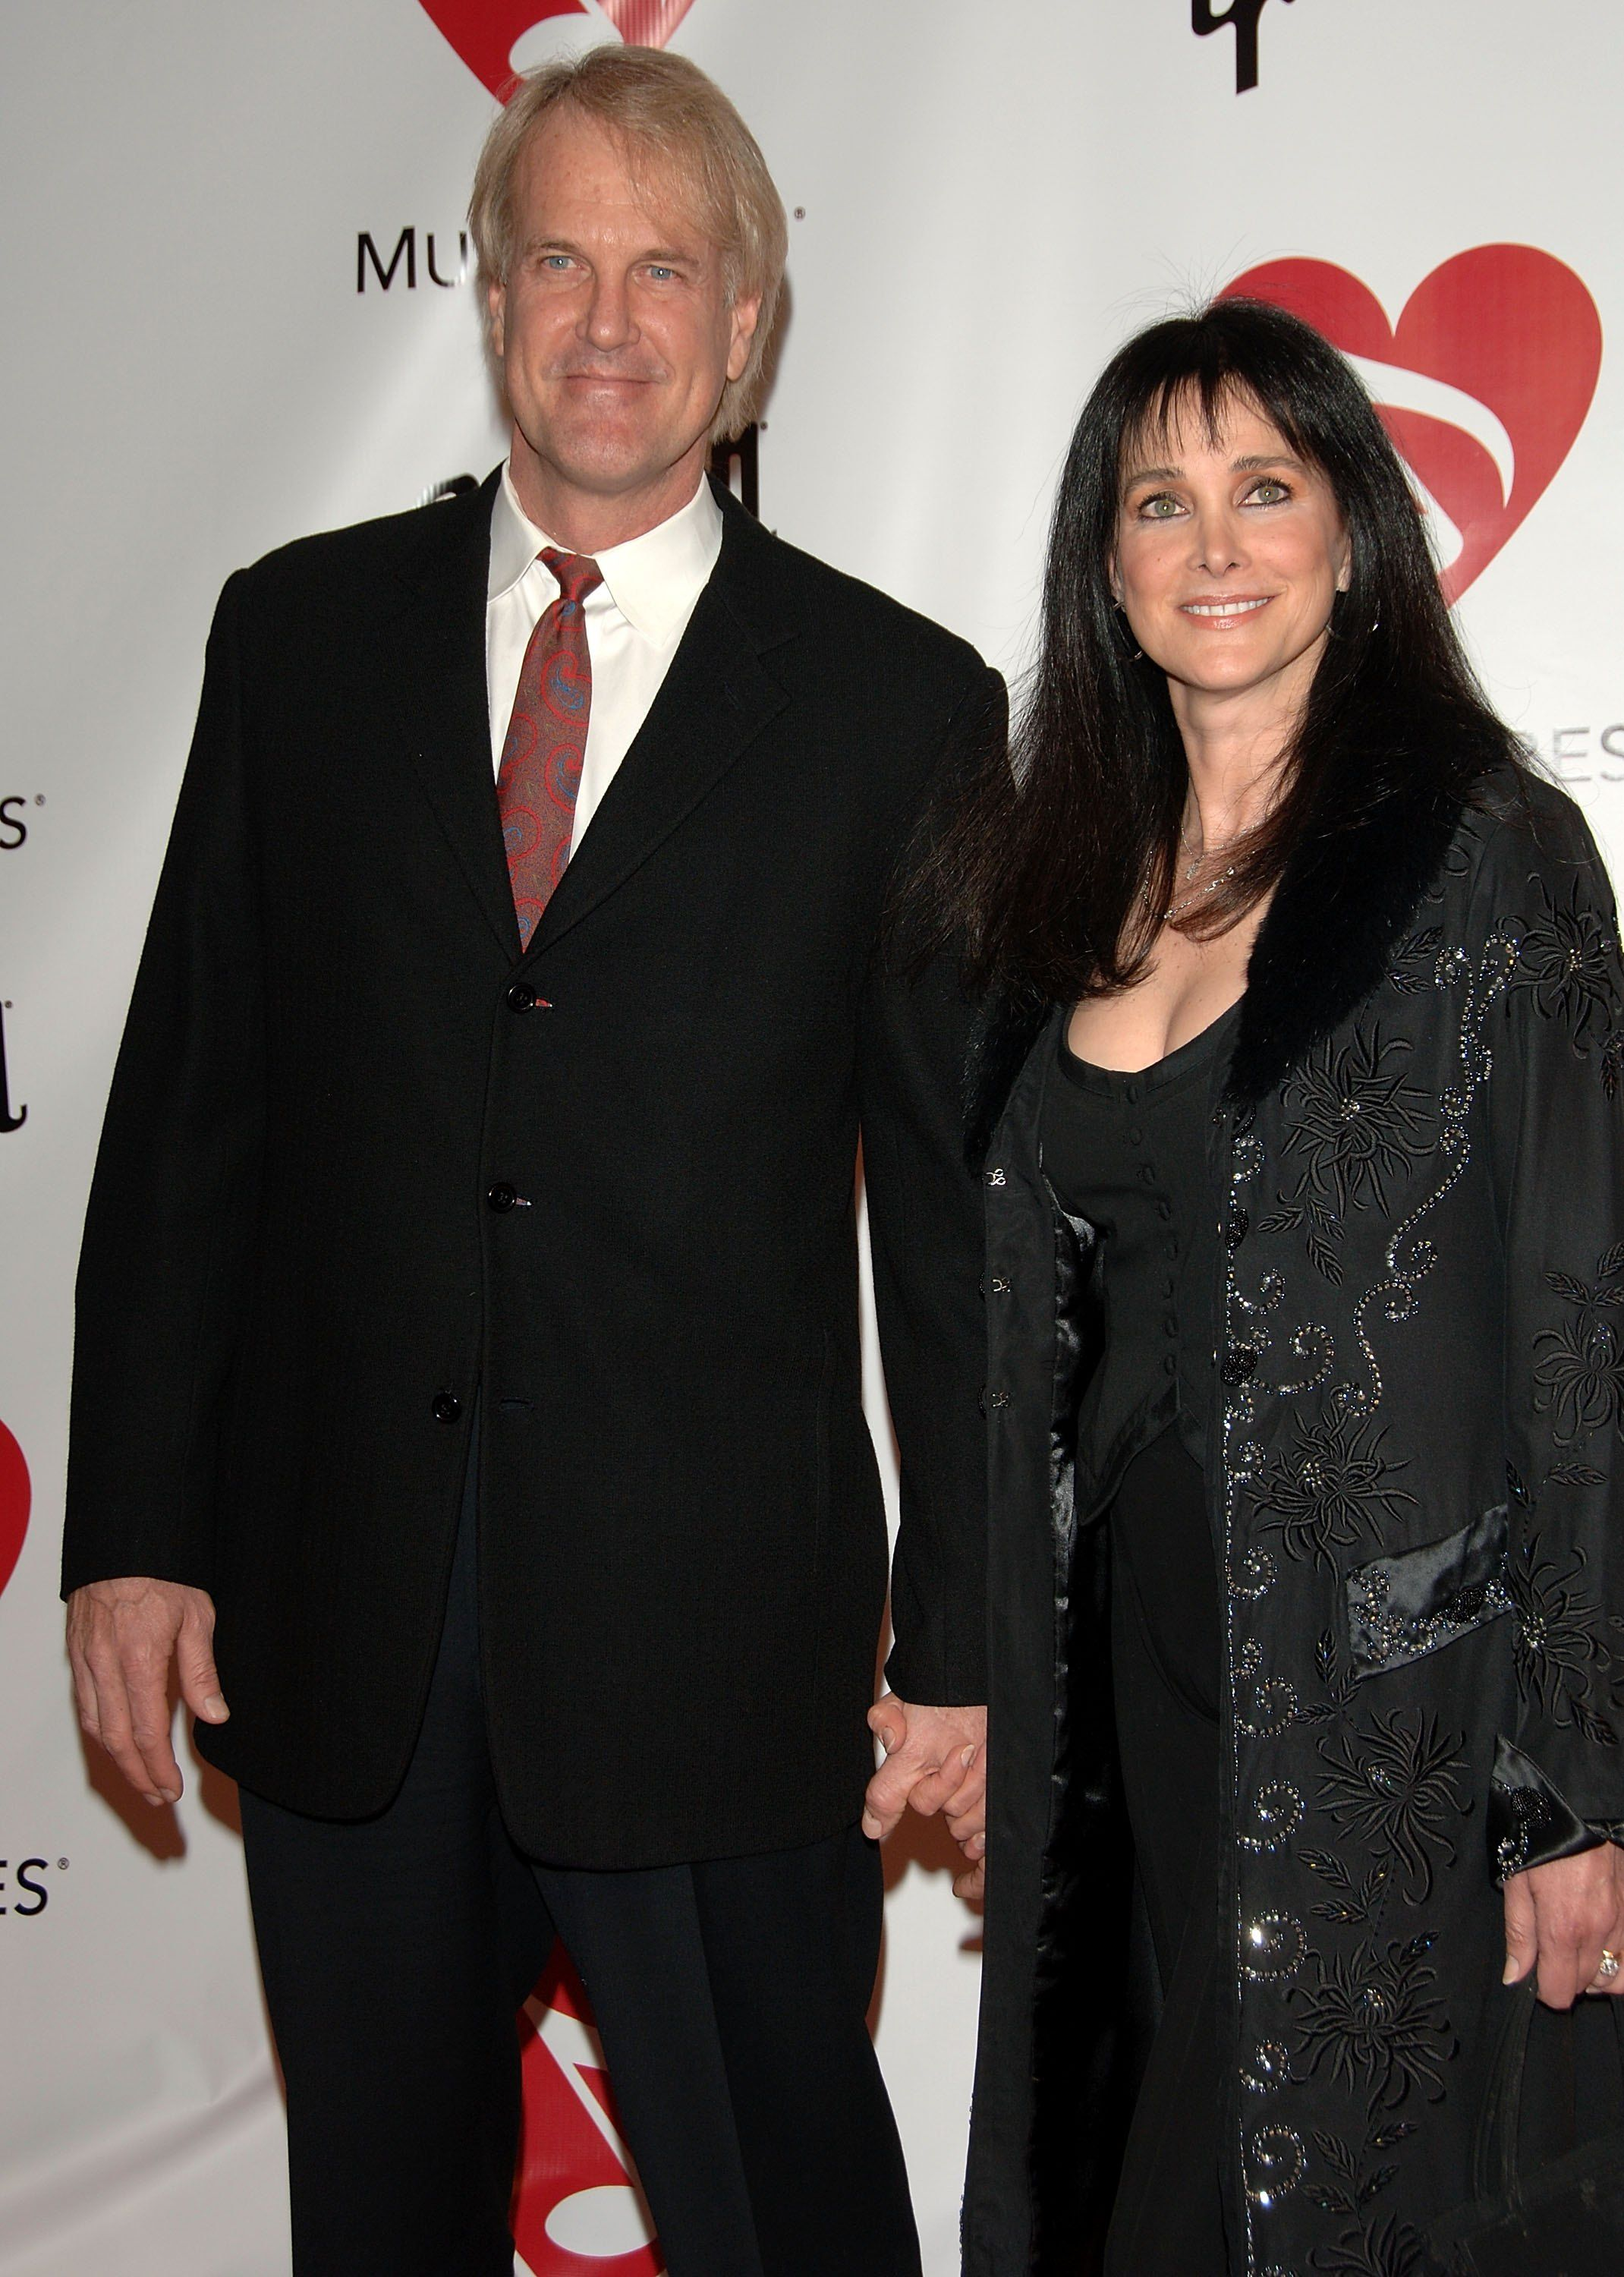 John Tesh and Connie Sellecca during 2006 MusiCares Person of the Year Tribute to James Taylor | Source: Getty Images